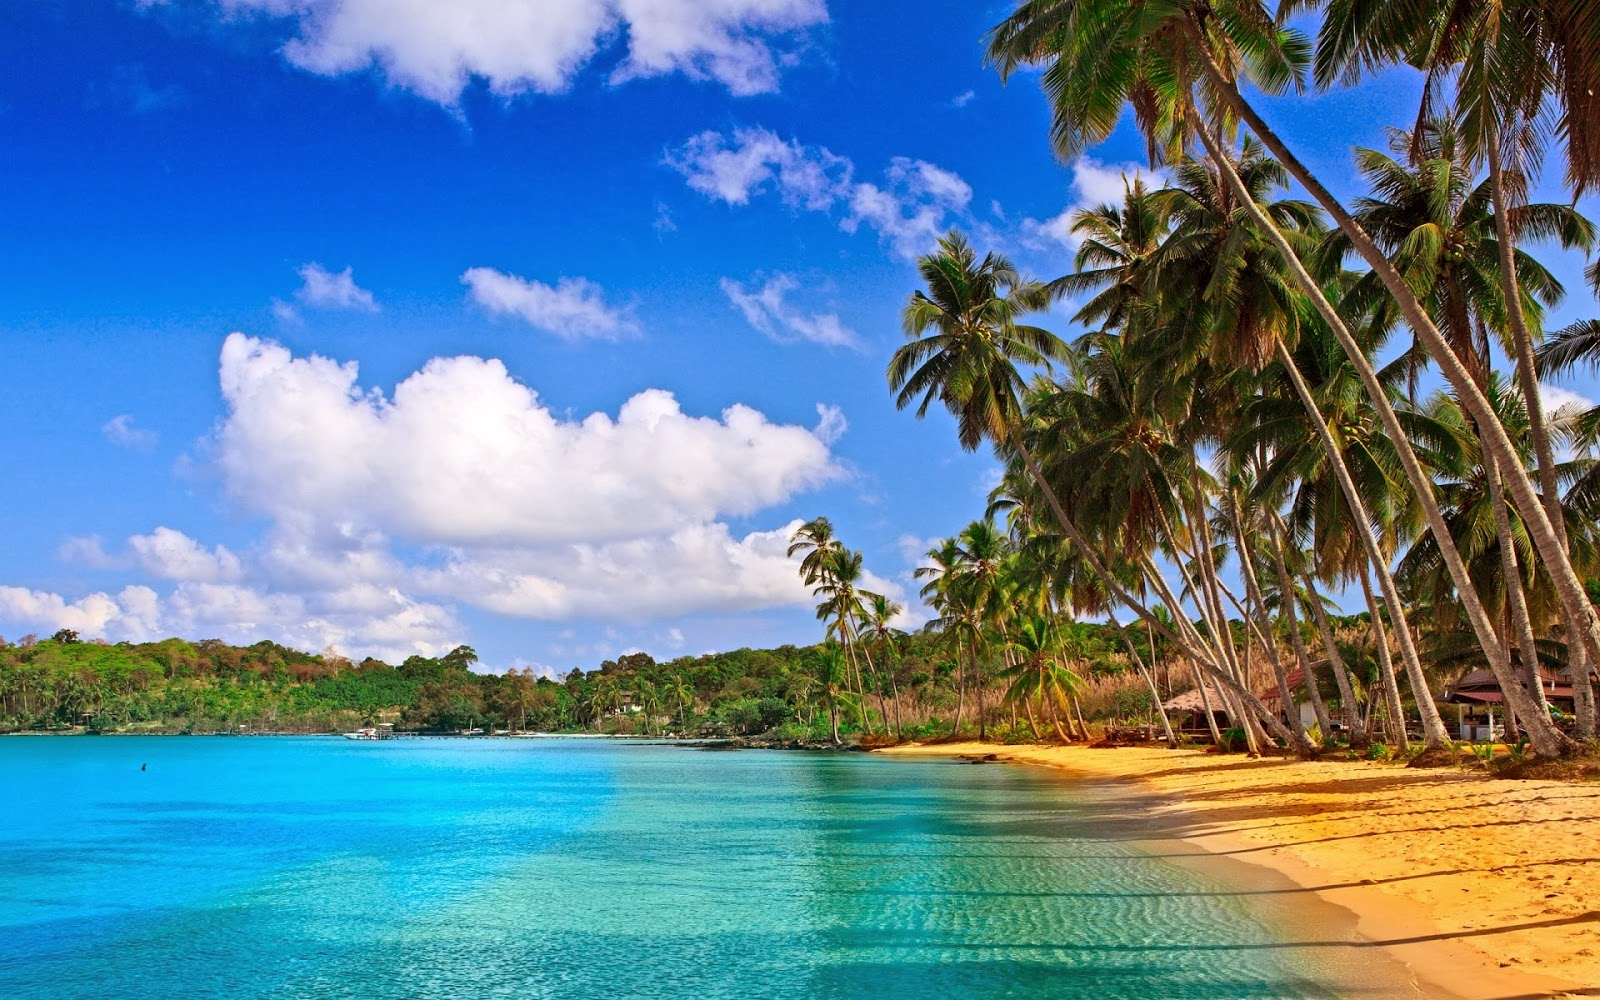 Goa Wallpapers HD Backgrounds Images Pics Photos Download 1600x1000